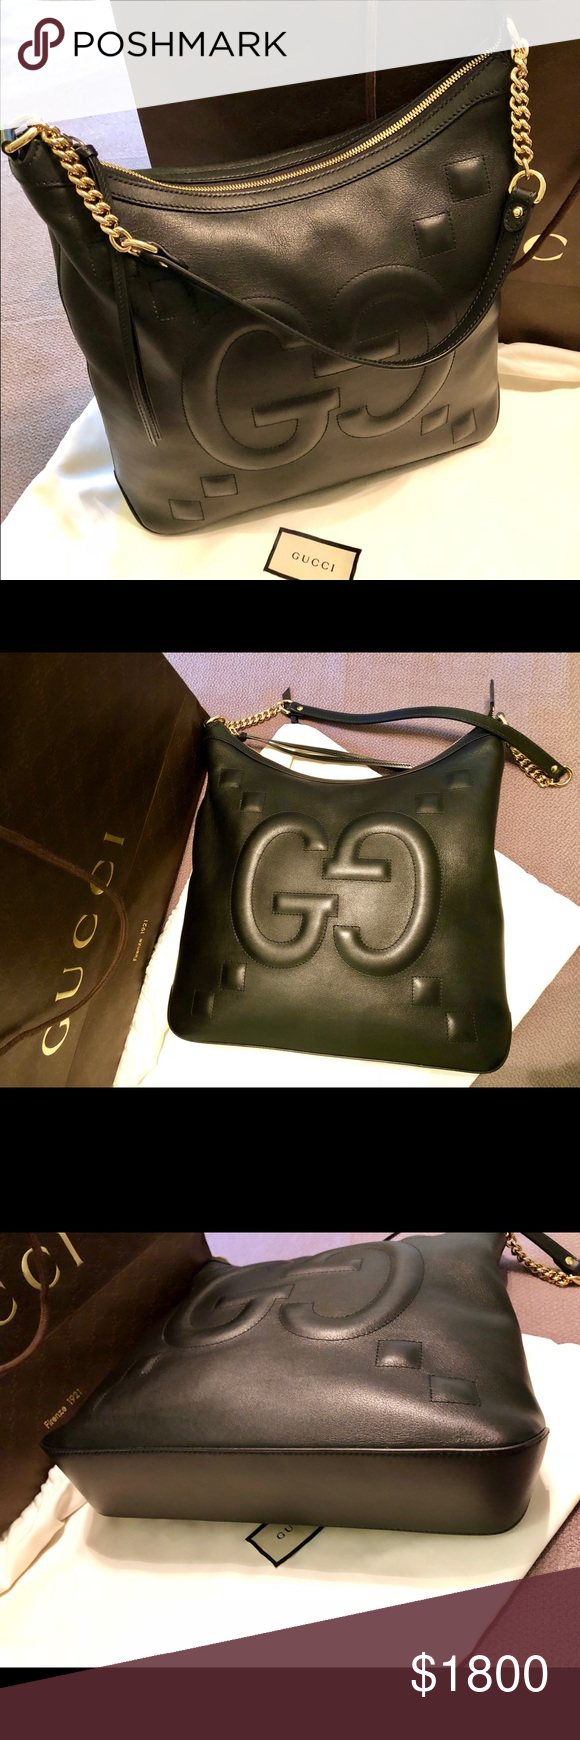 bc31bc669 NWT GUCCI Apollo Embossed GG Calfskin Black Hobo This bag features gold  chain link shoulder straps